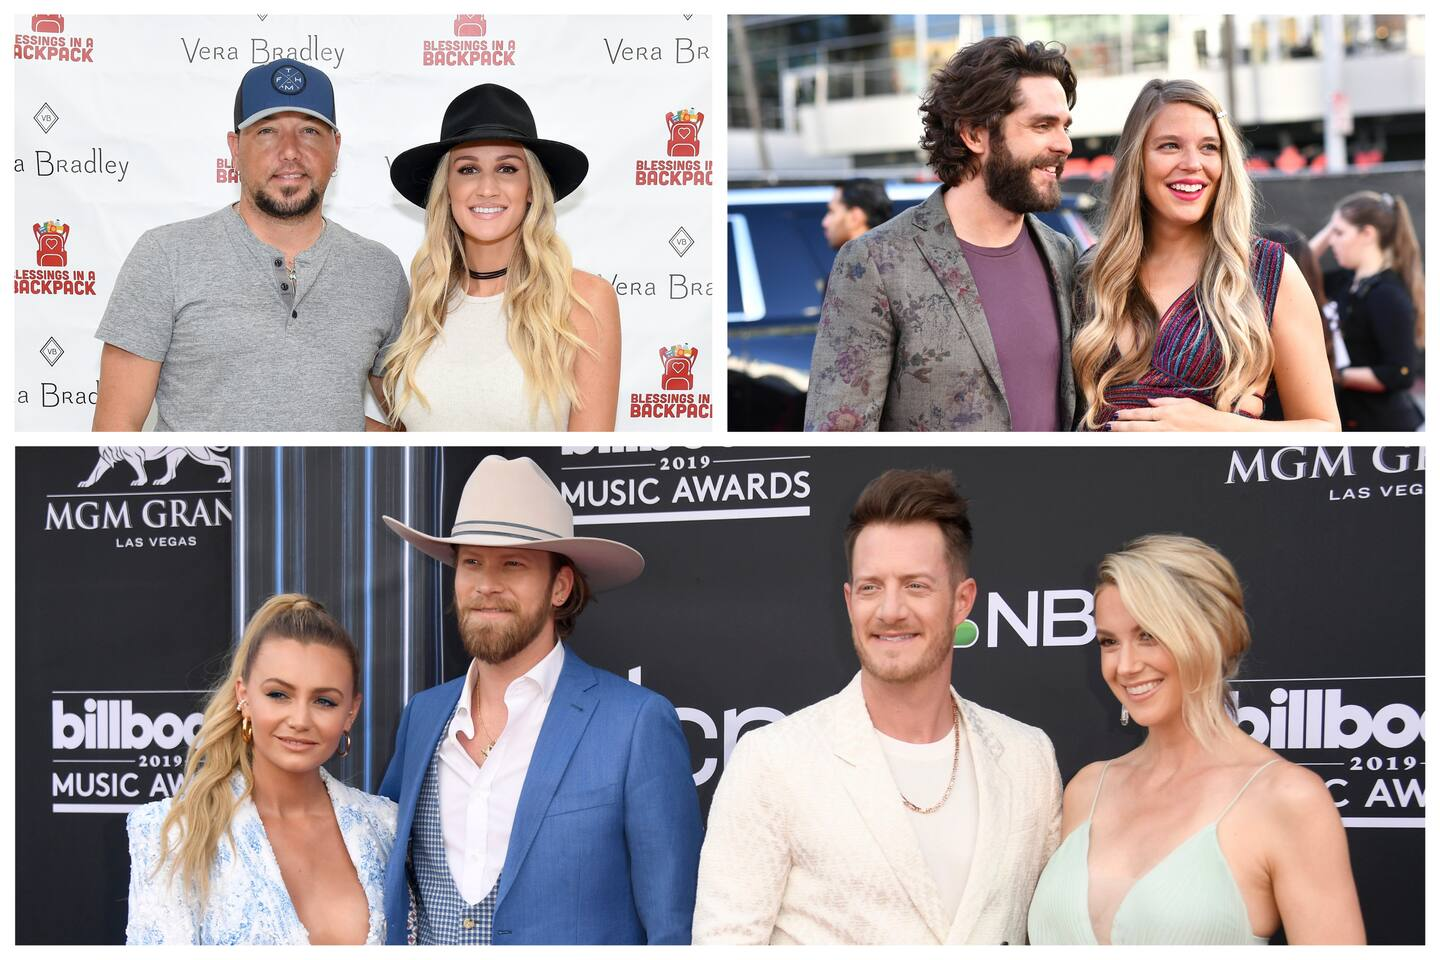 After Brittany Aldean's controversial Instagram post, a look at how the wives of country stars created a social media empire